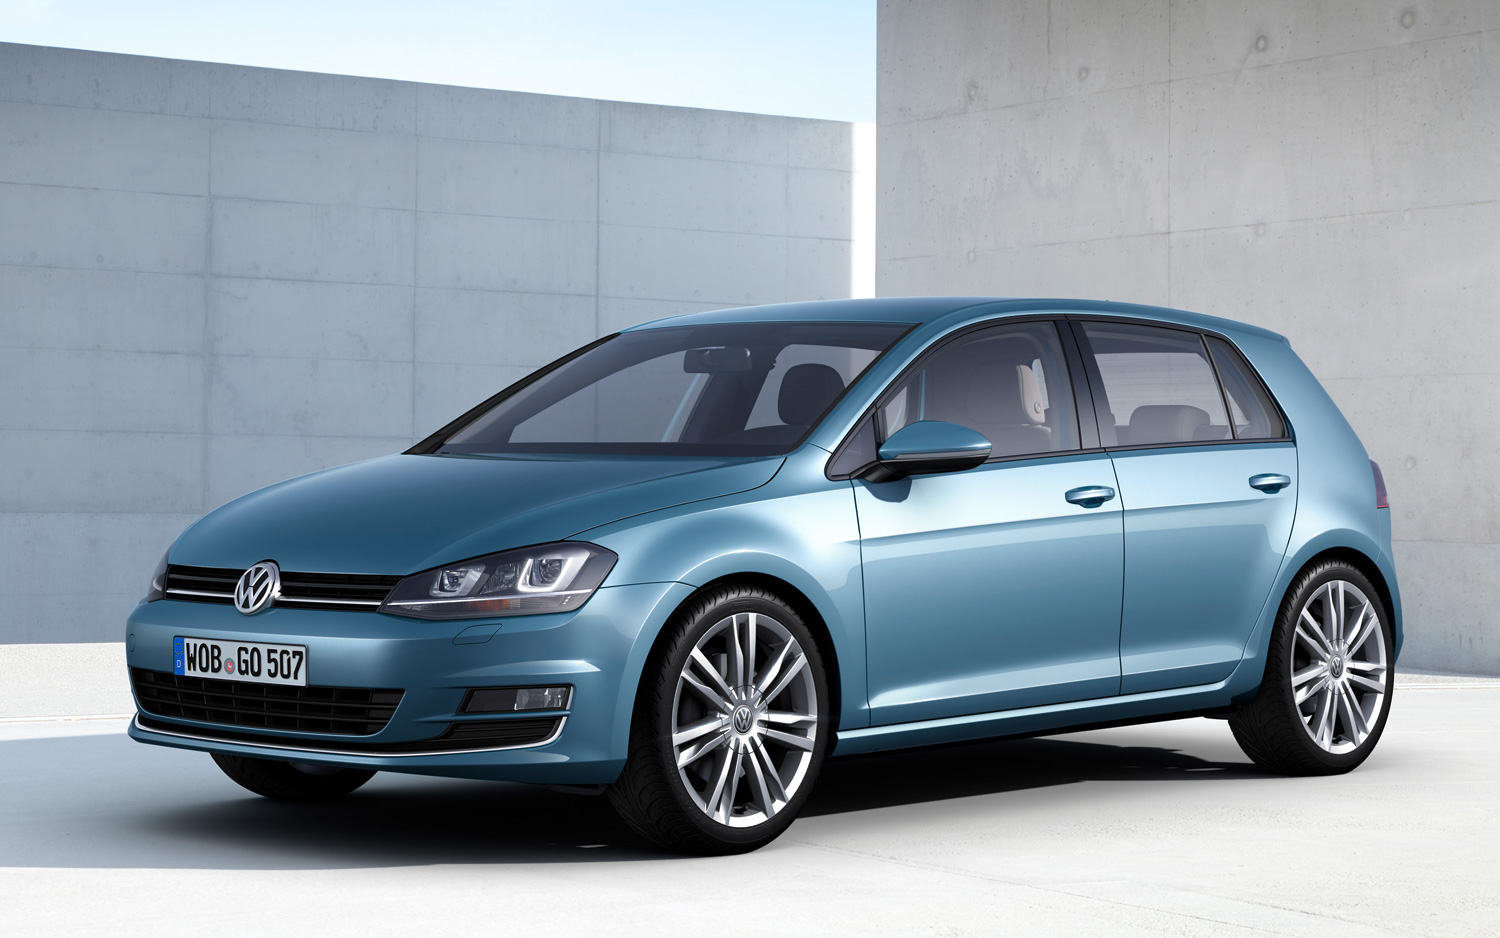 Confirmed: Next-Gen Volkswagen Golf Production Starts in Mexico in 2014